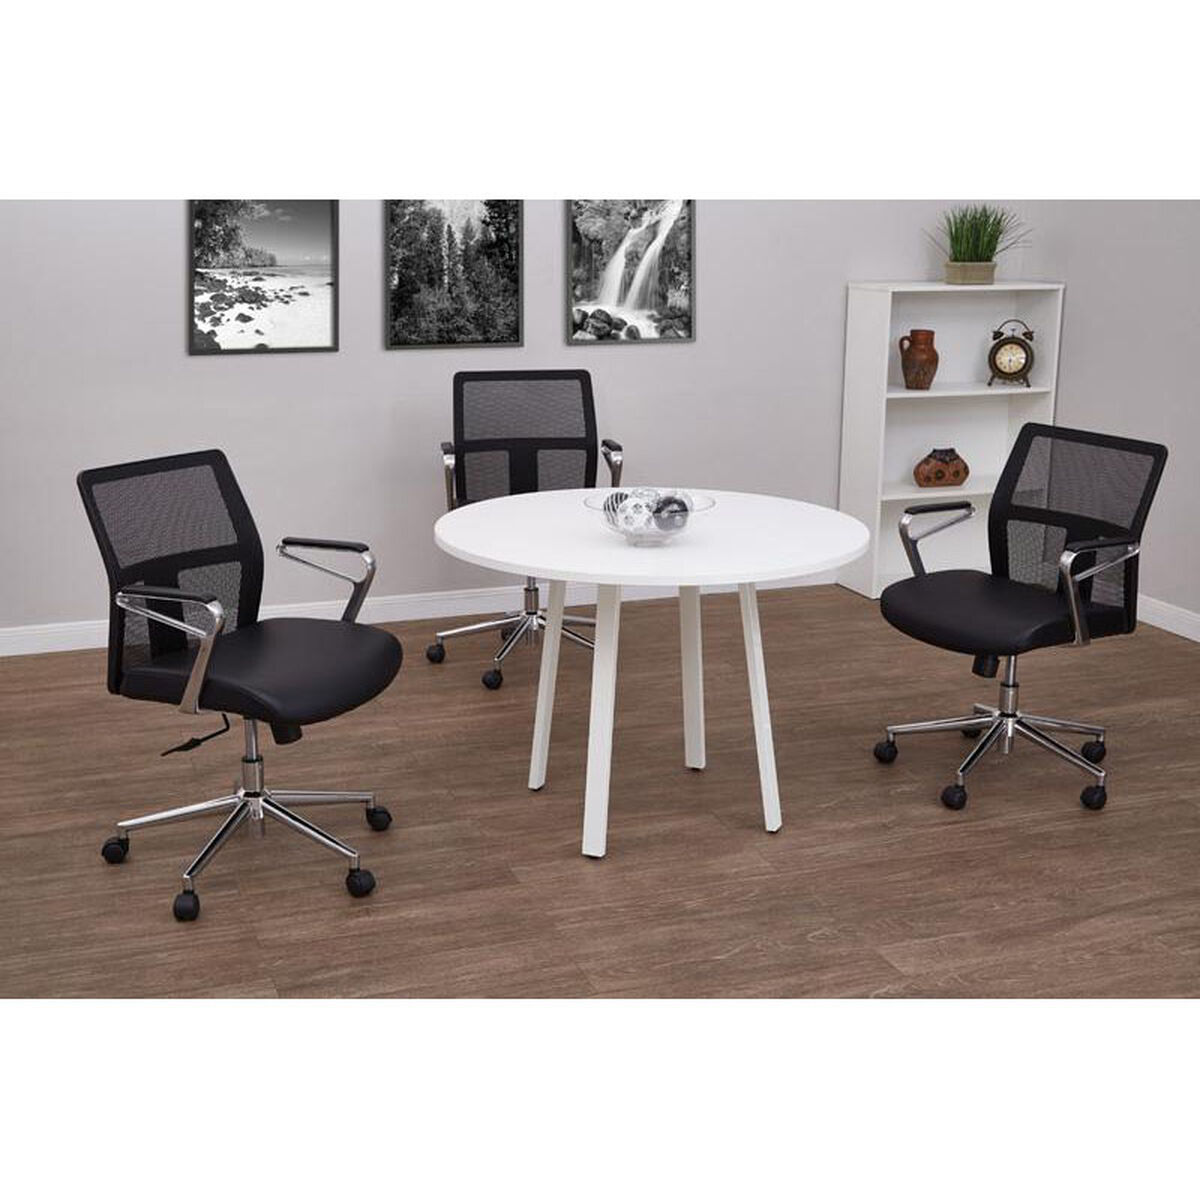 Pro Line II White Conference Table PRDRTWH Bizchaircom - White laminate conference table